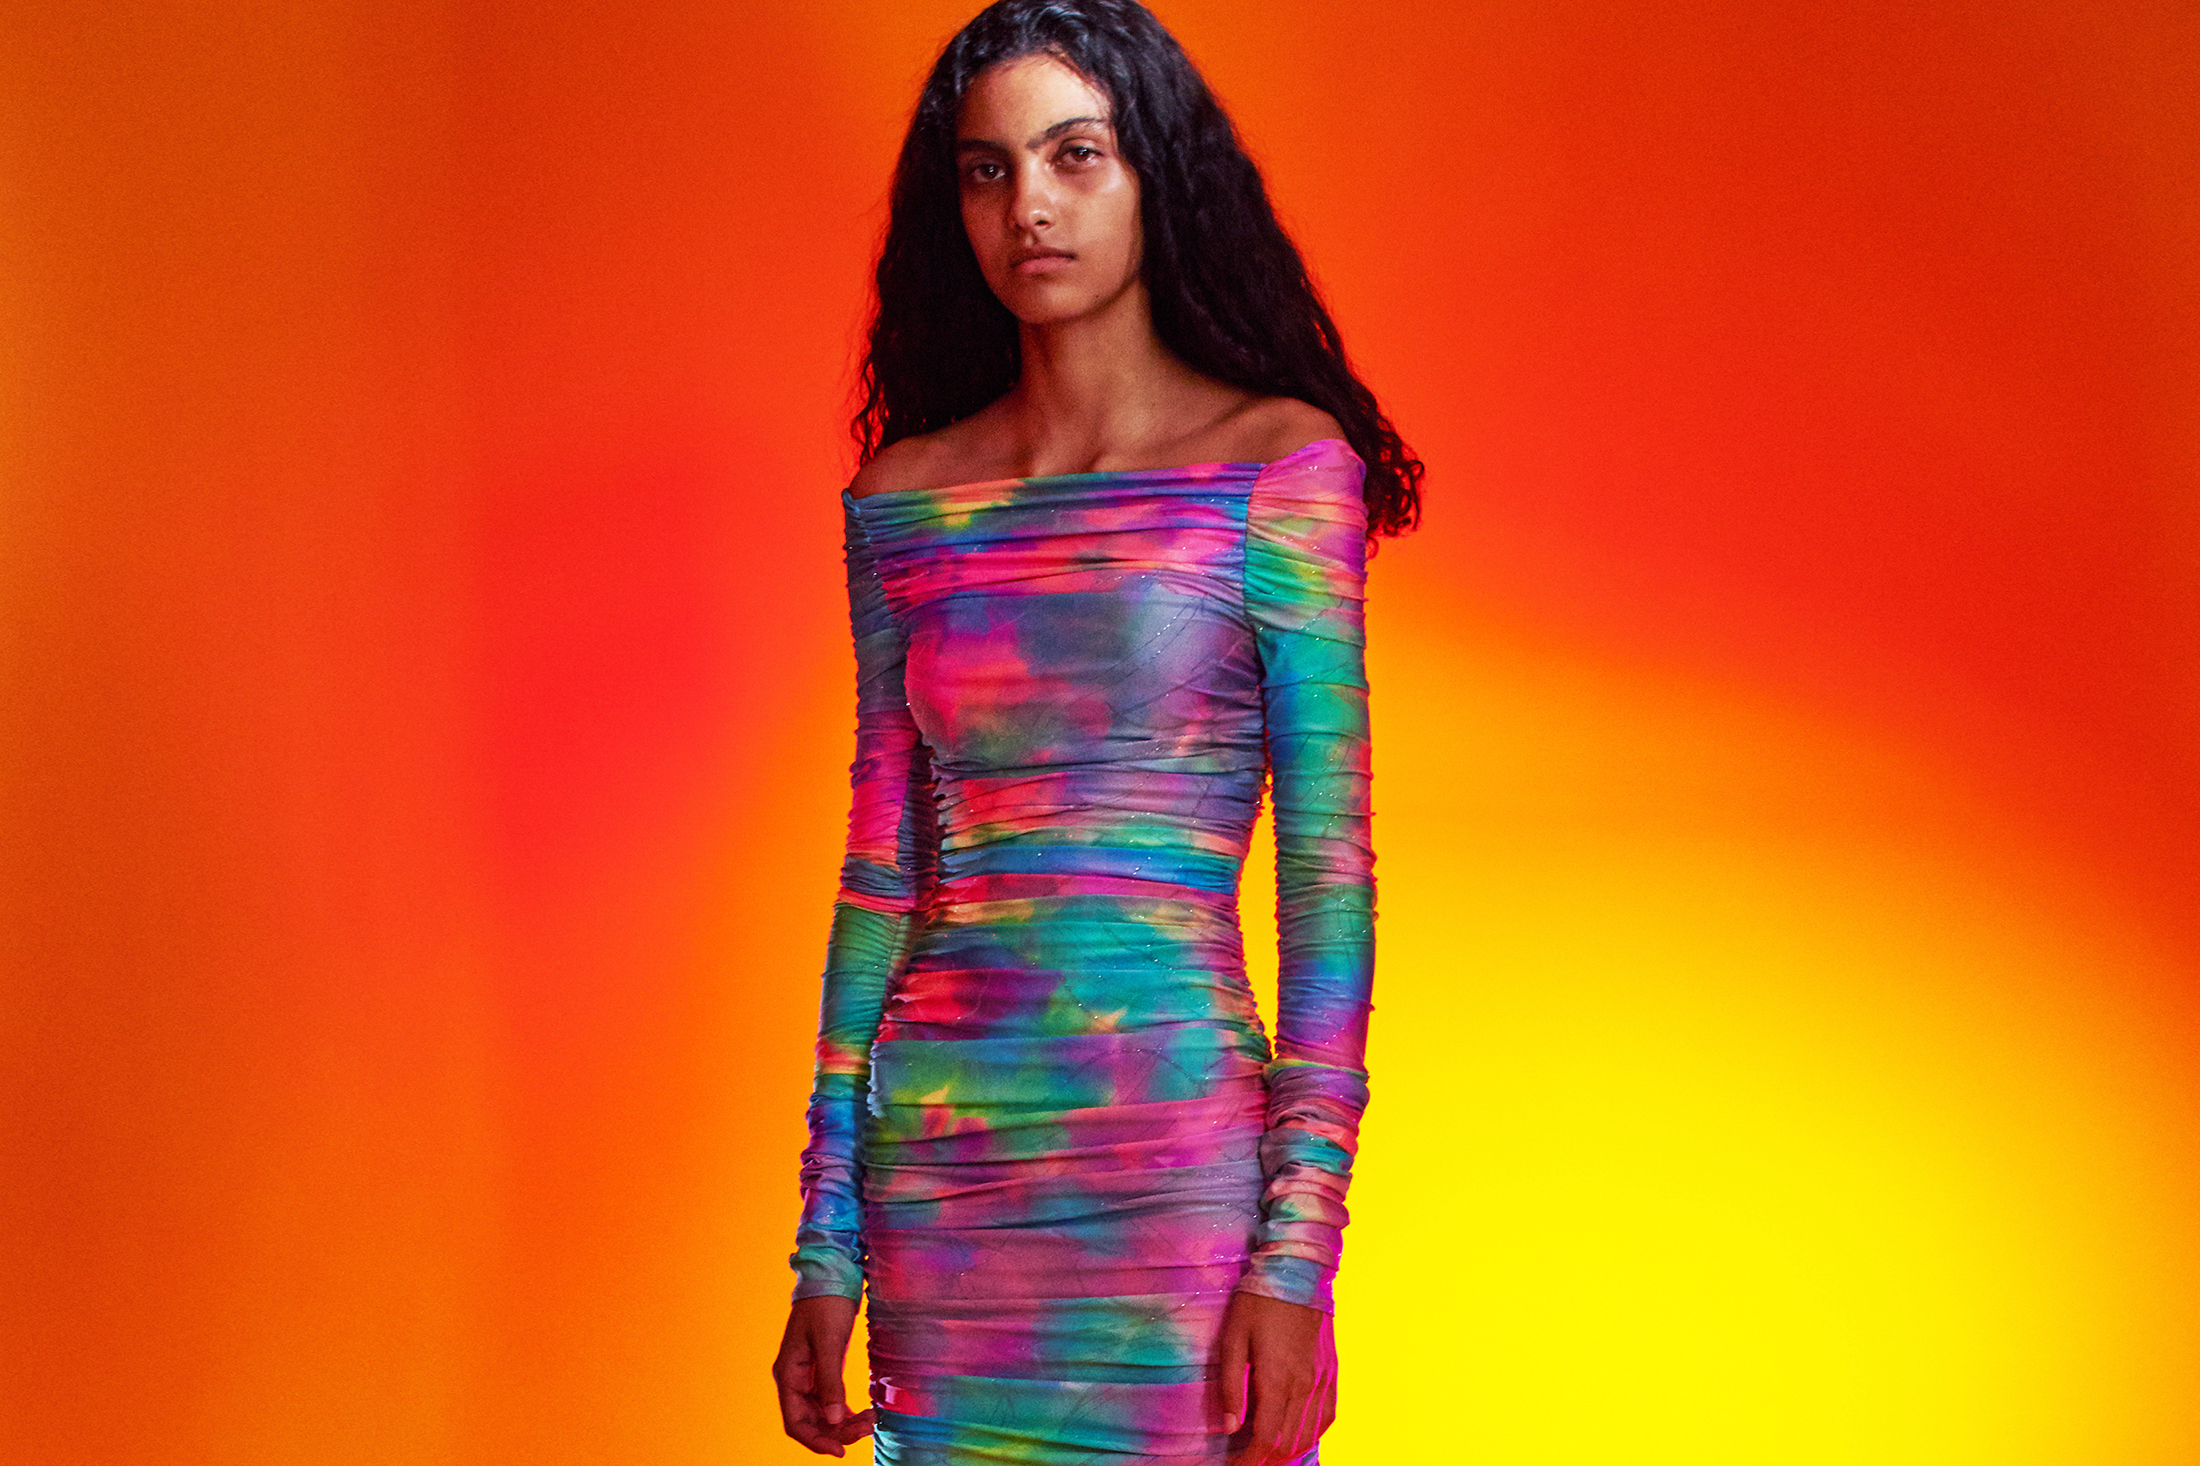 Sies Marjan Fall 2019 Hypercolor Series by Gareth McConnell